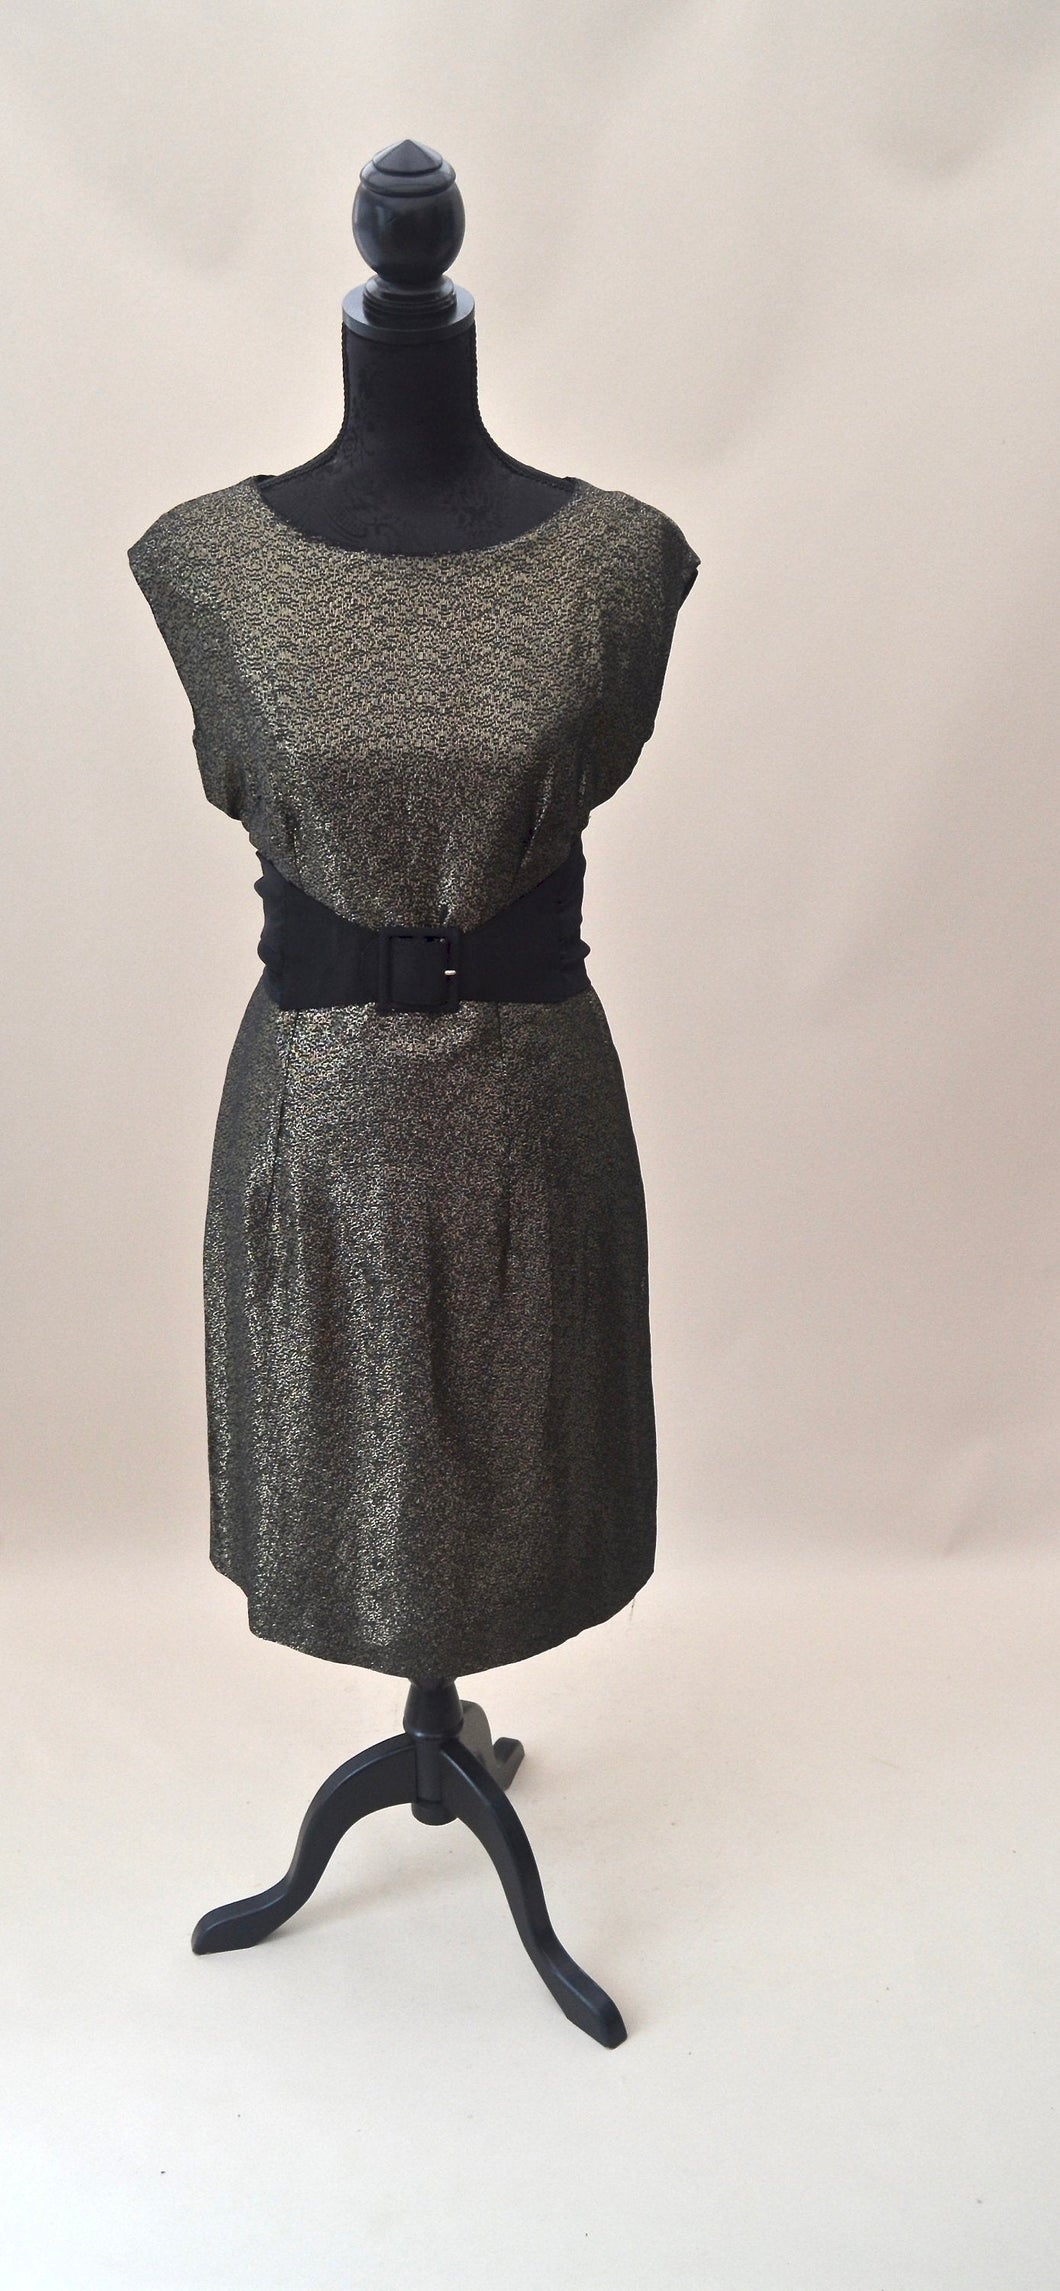 1960s Black and gold cocktail shift dress, Est UK size 12/14